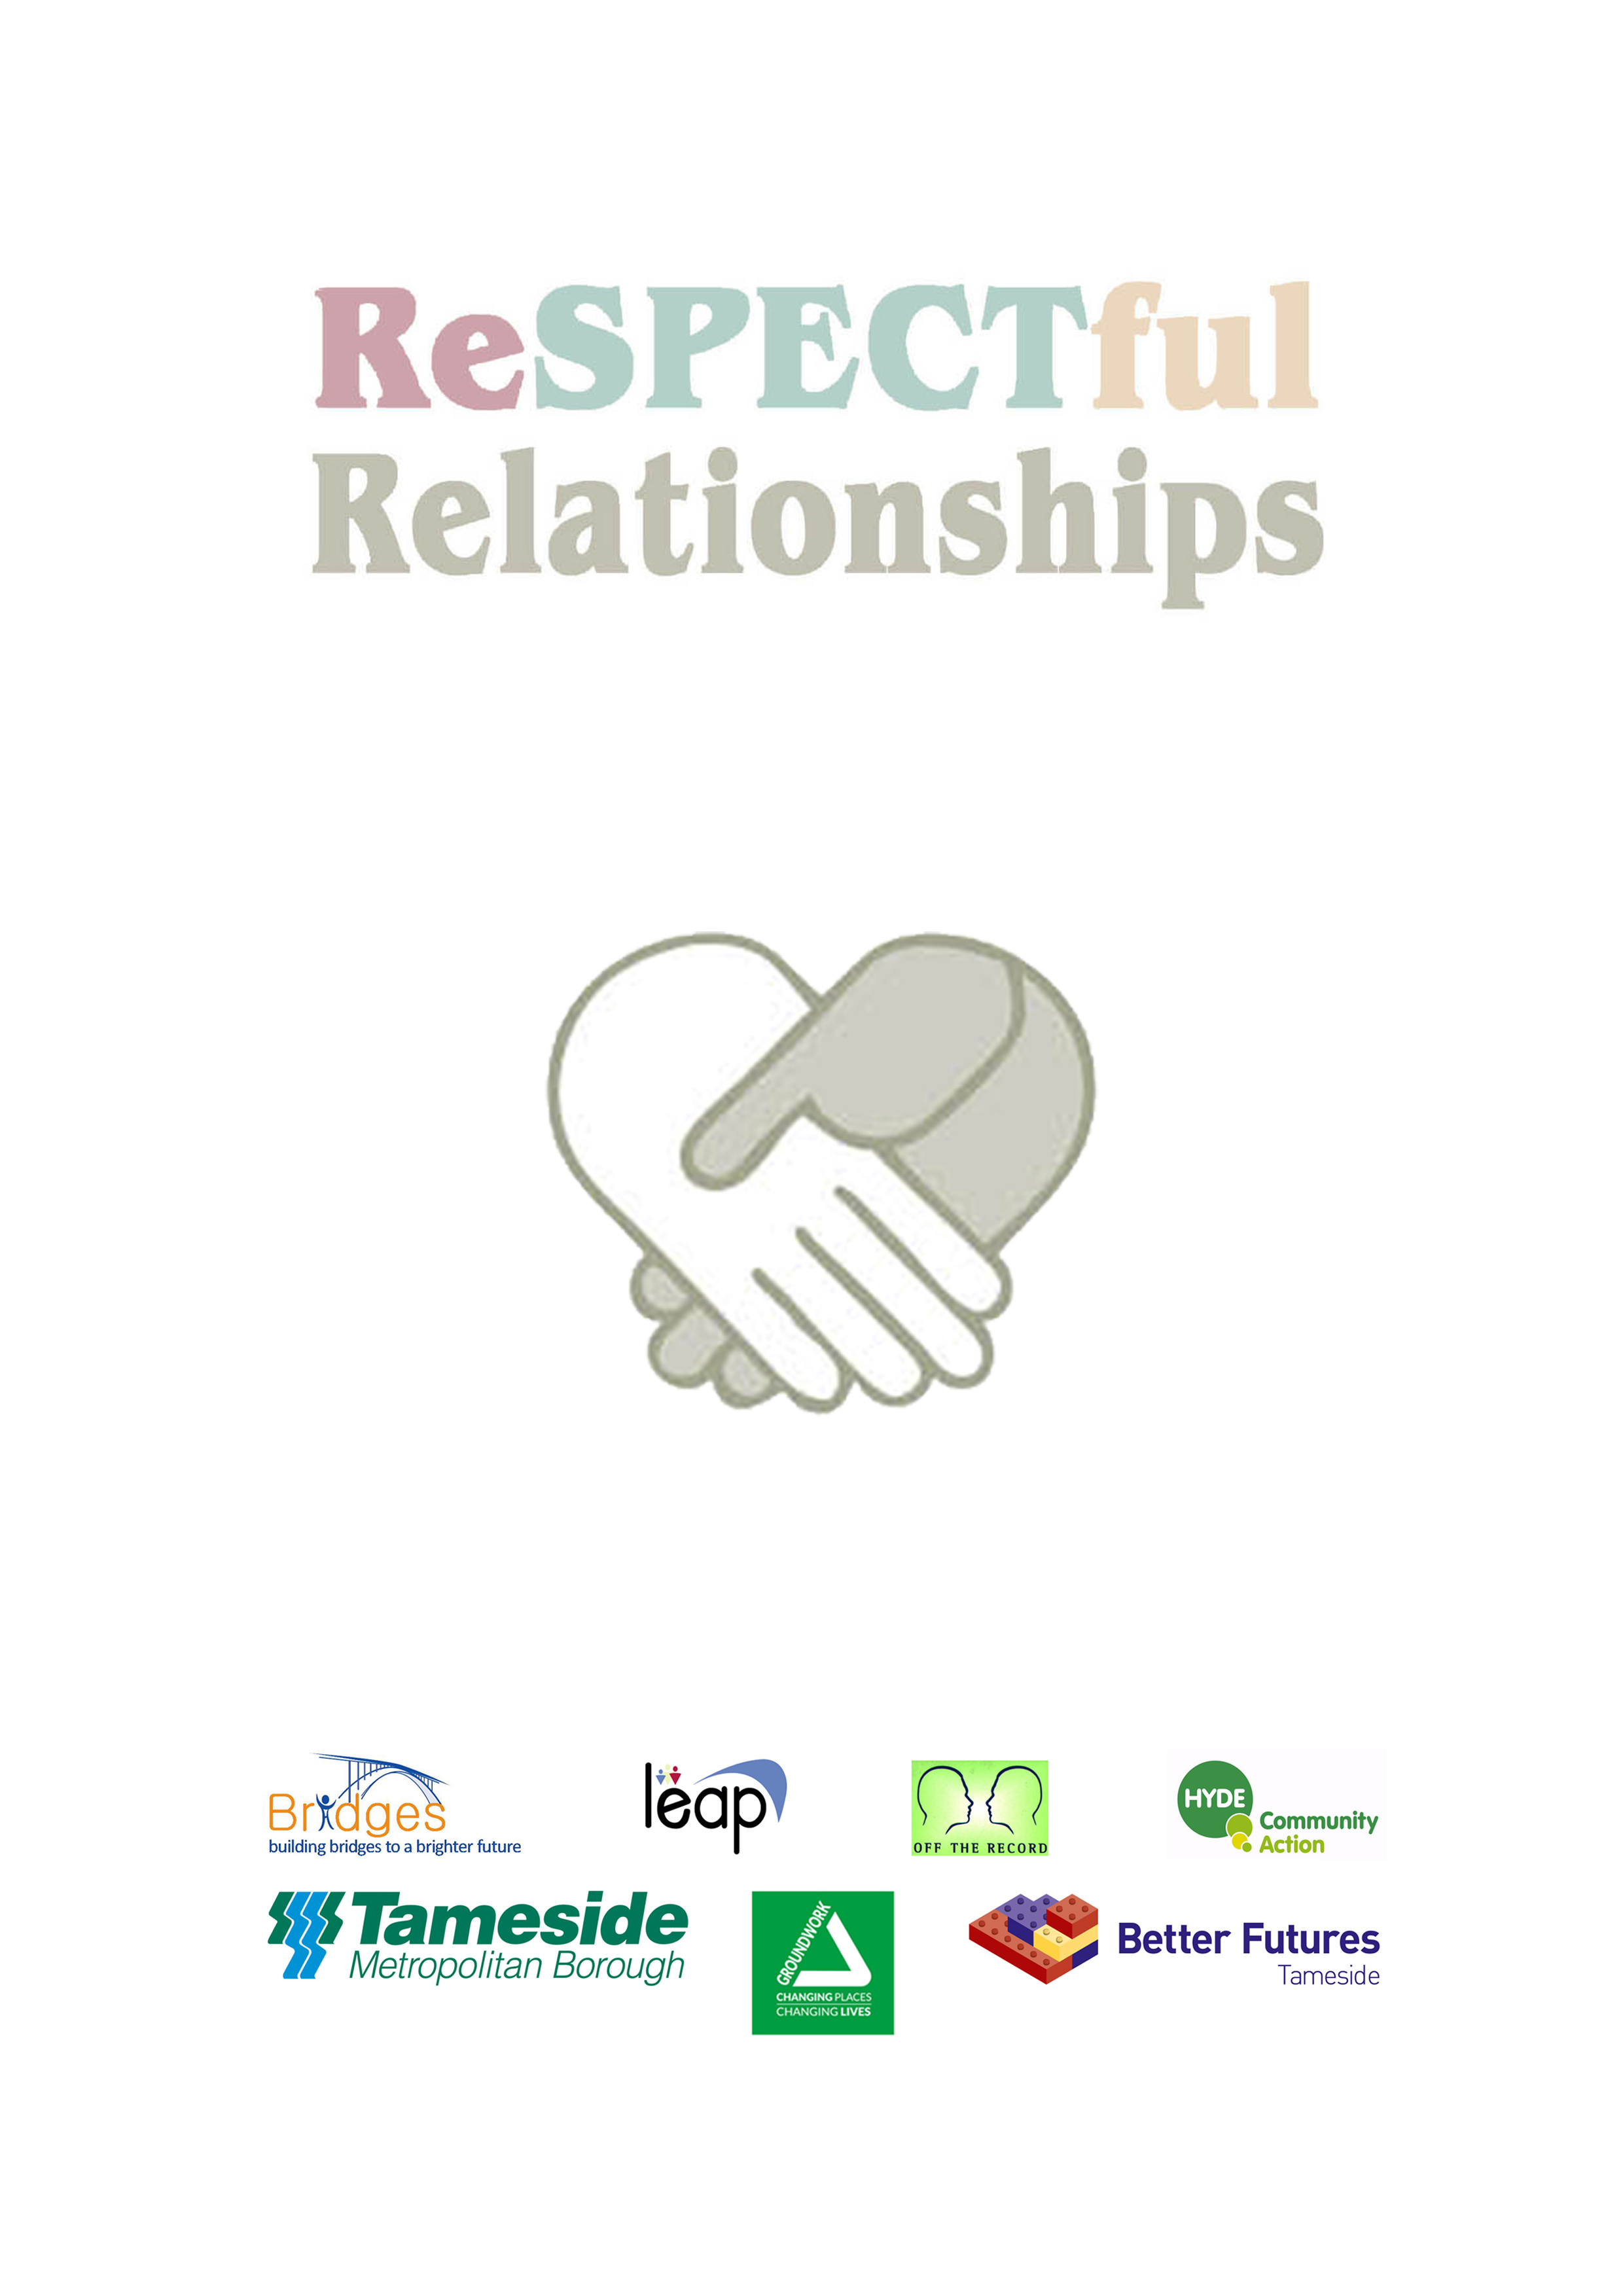 ReSPECTful Relationships Logo